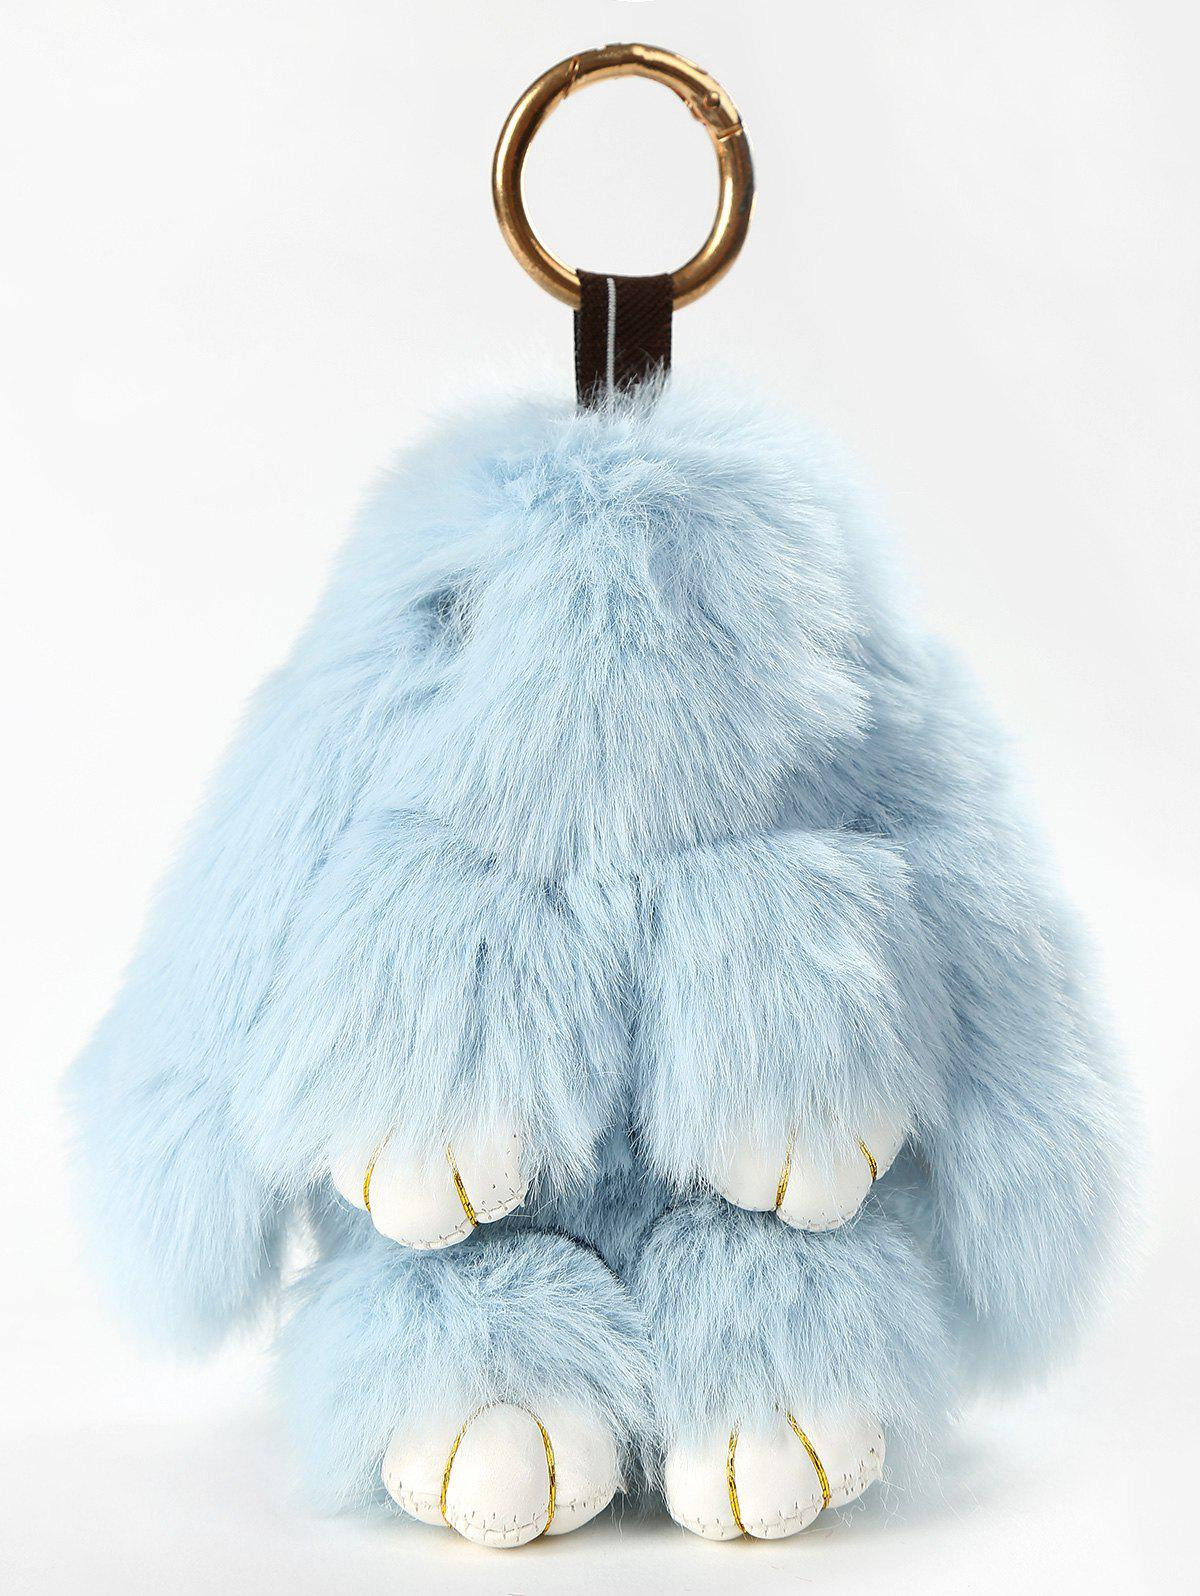 Stuffed Toy Cartoon Bunny with Key Chain, Light blue